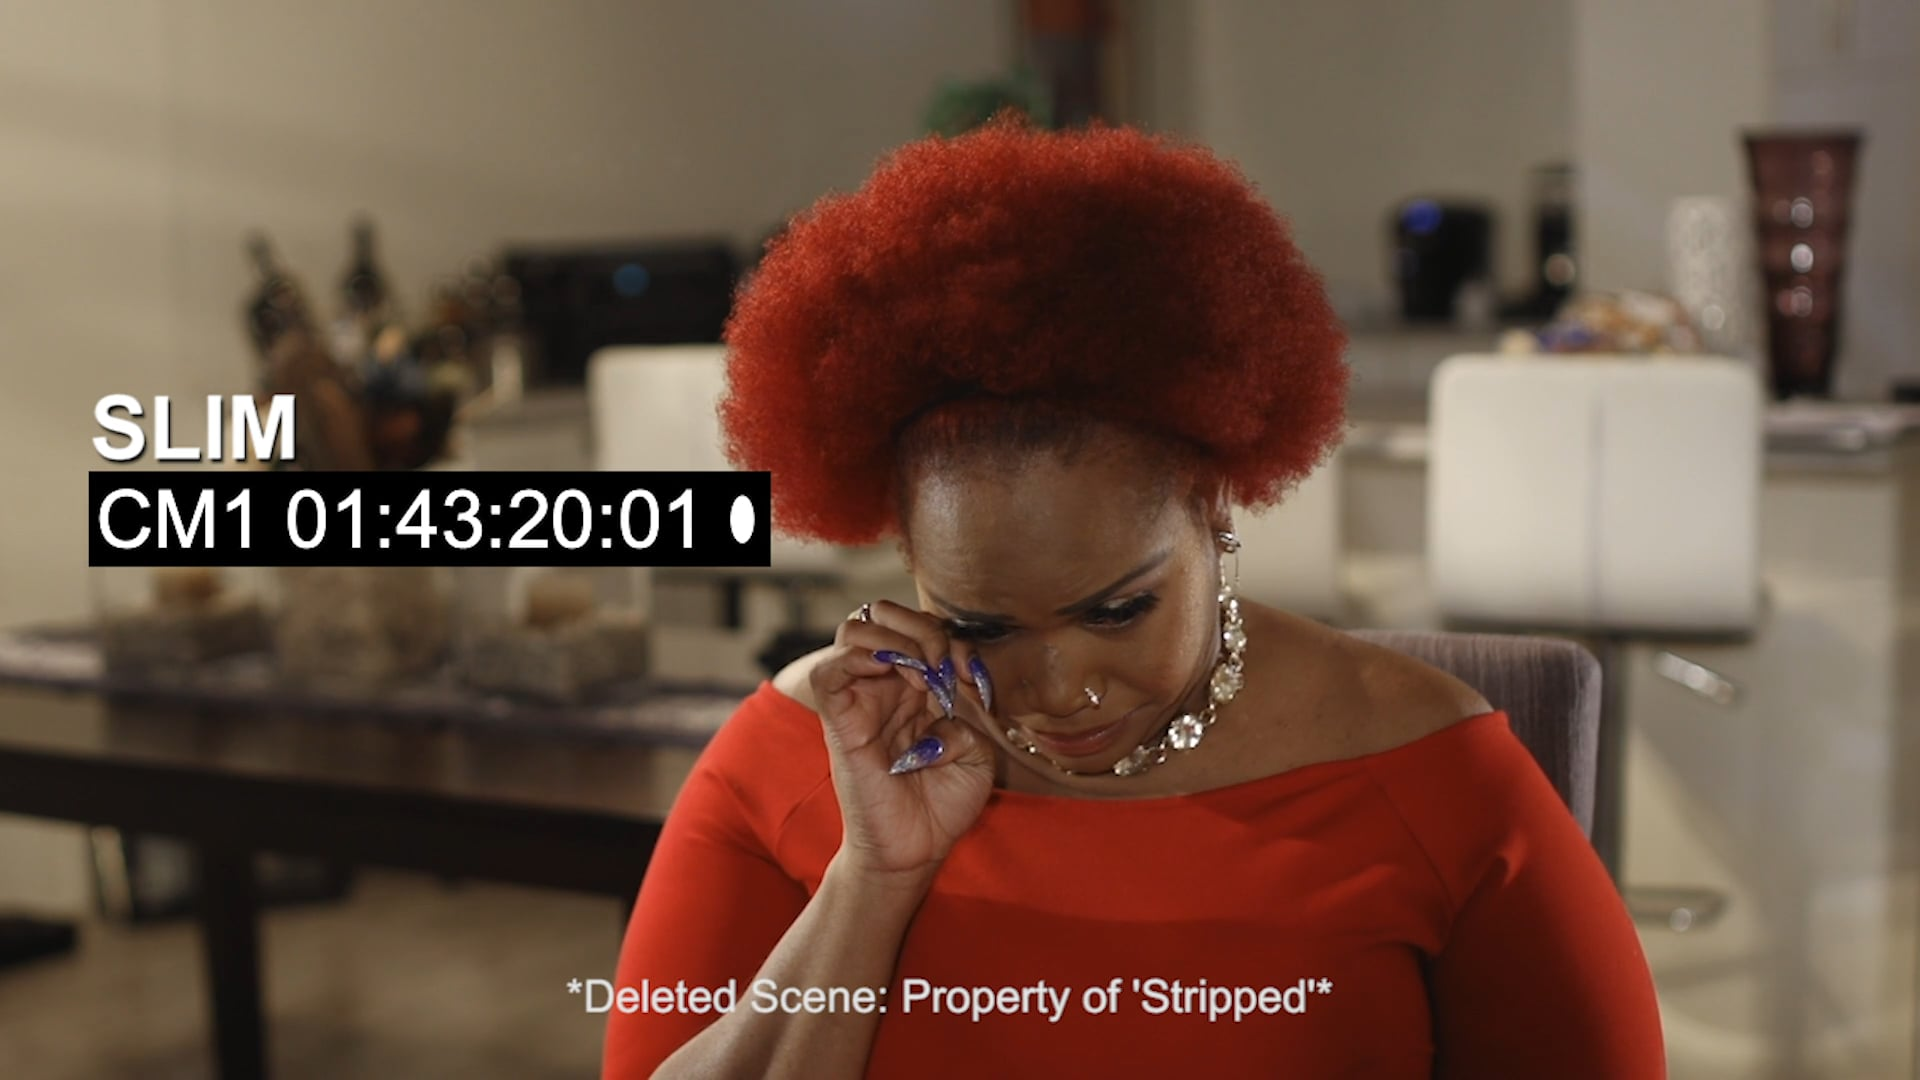 Stripped - Deleted Scene - Slim Speaks Friendship with Mz Lady Ice